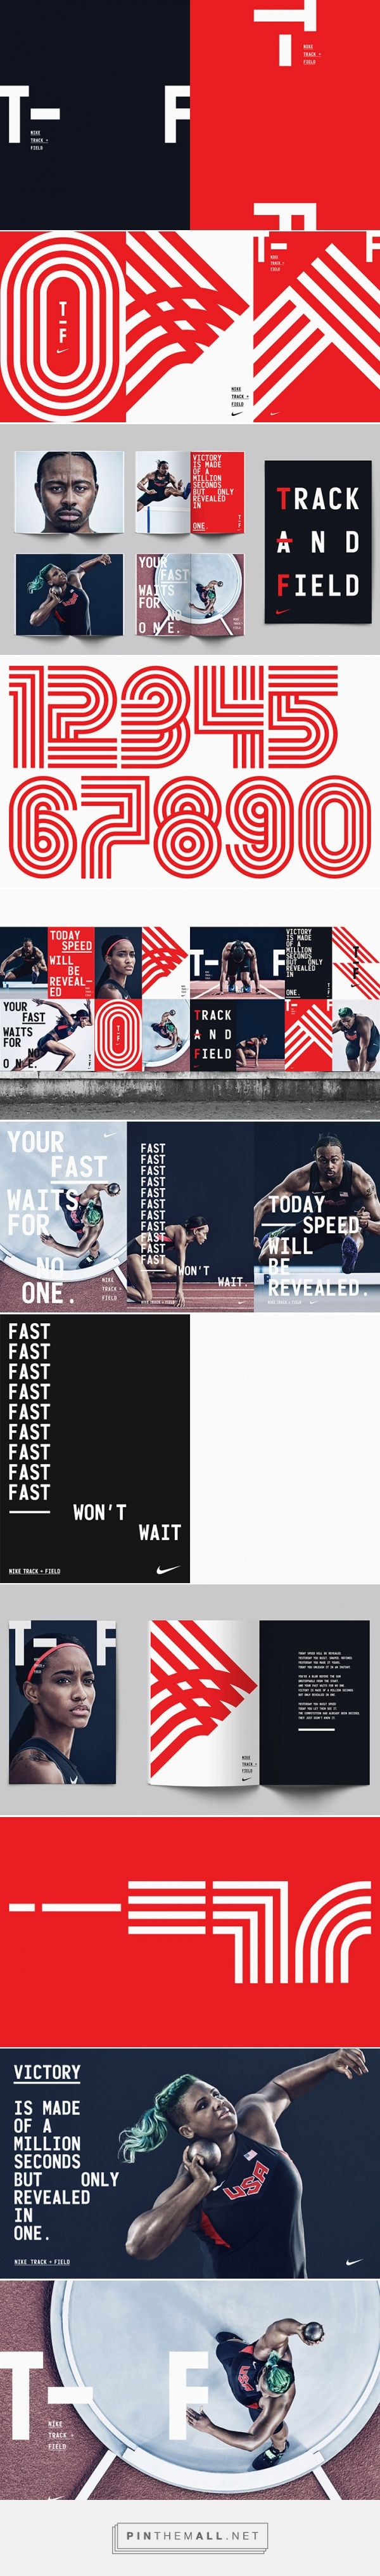 It's Nice That | Build and the Nike brand team creates bold branding for Nike's Track and Field line - created via https://pinthemall.net